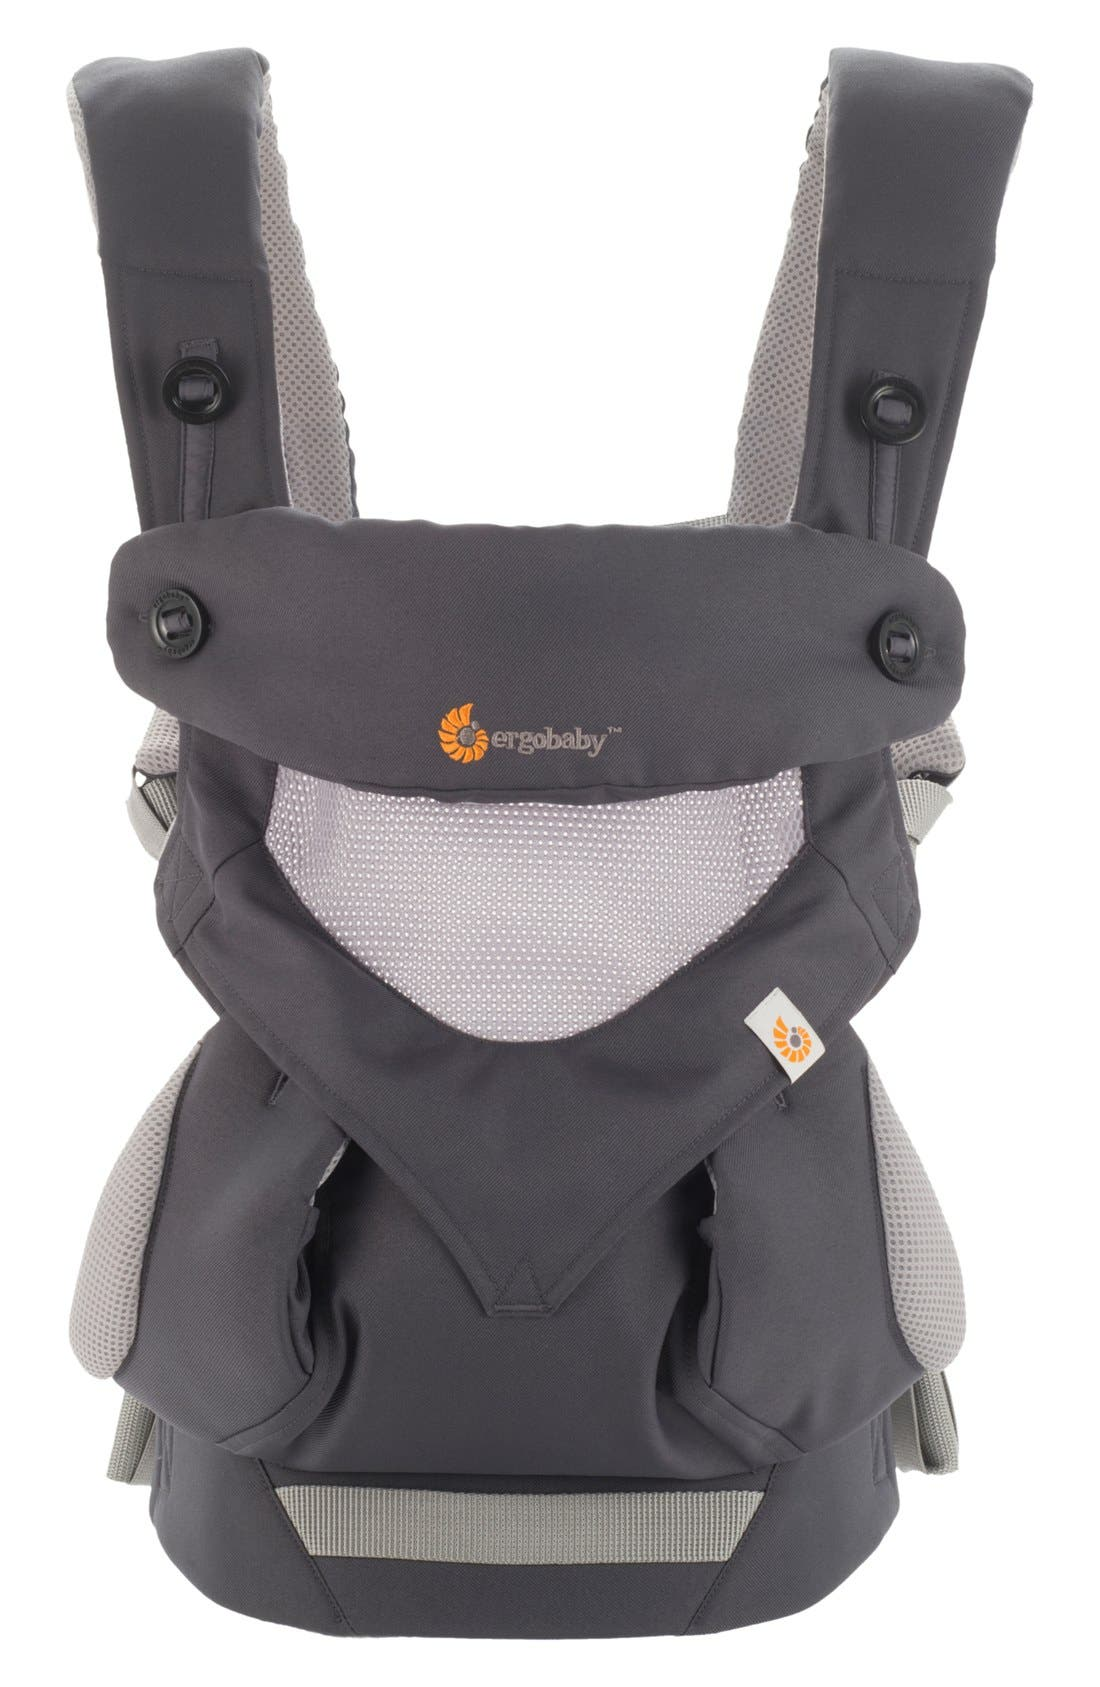 Main Image - ERGObaby 'Four Position 360 - Cool Air' Baby Carrier